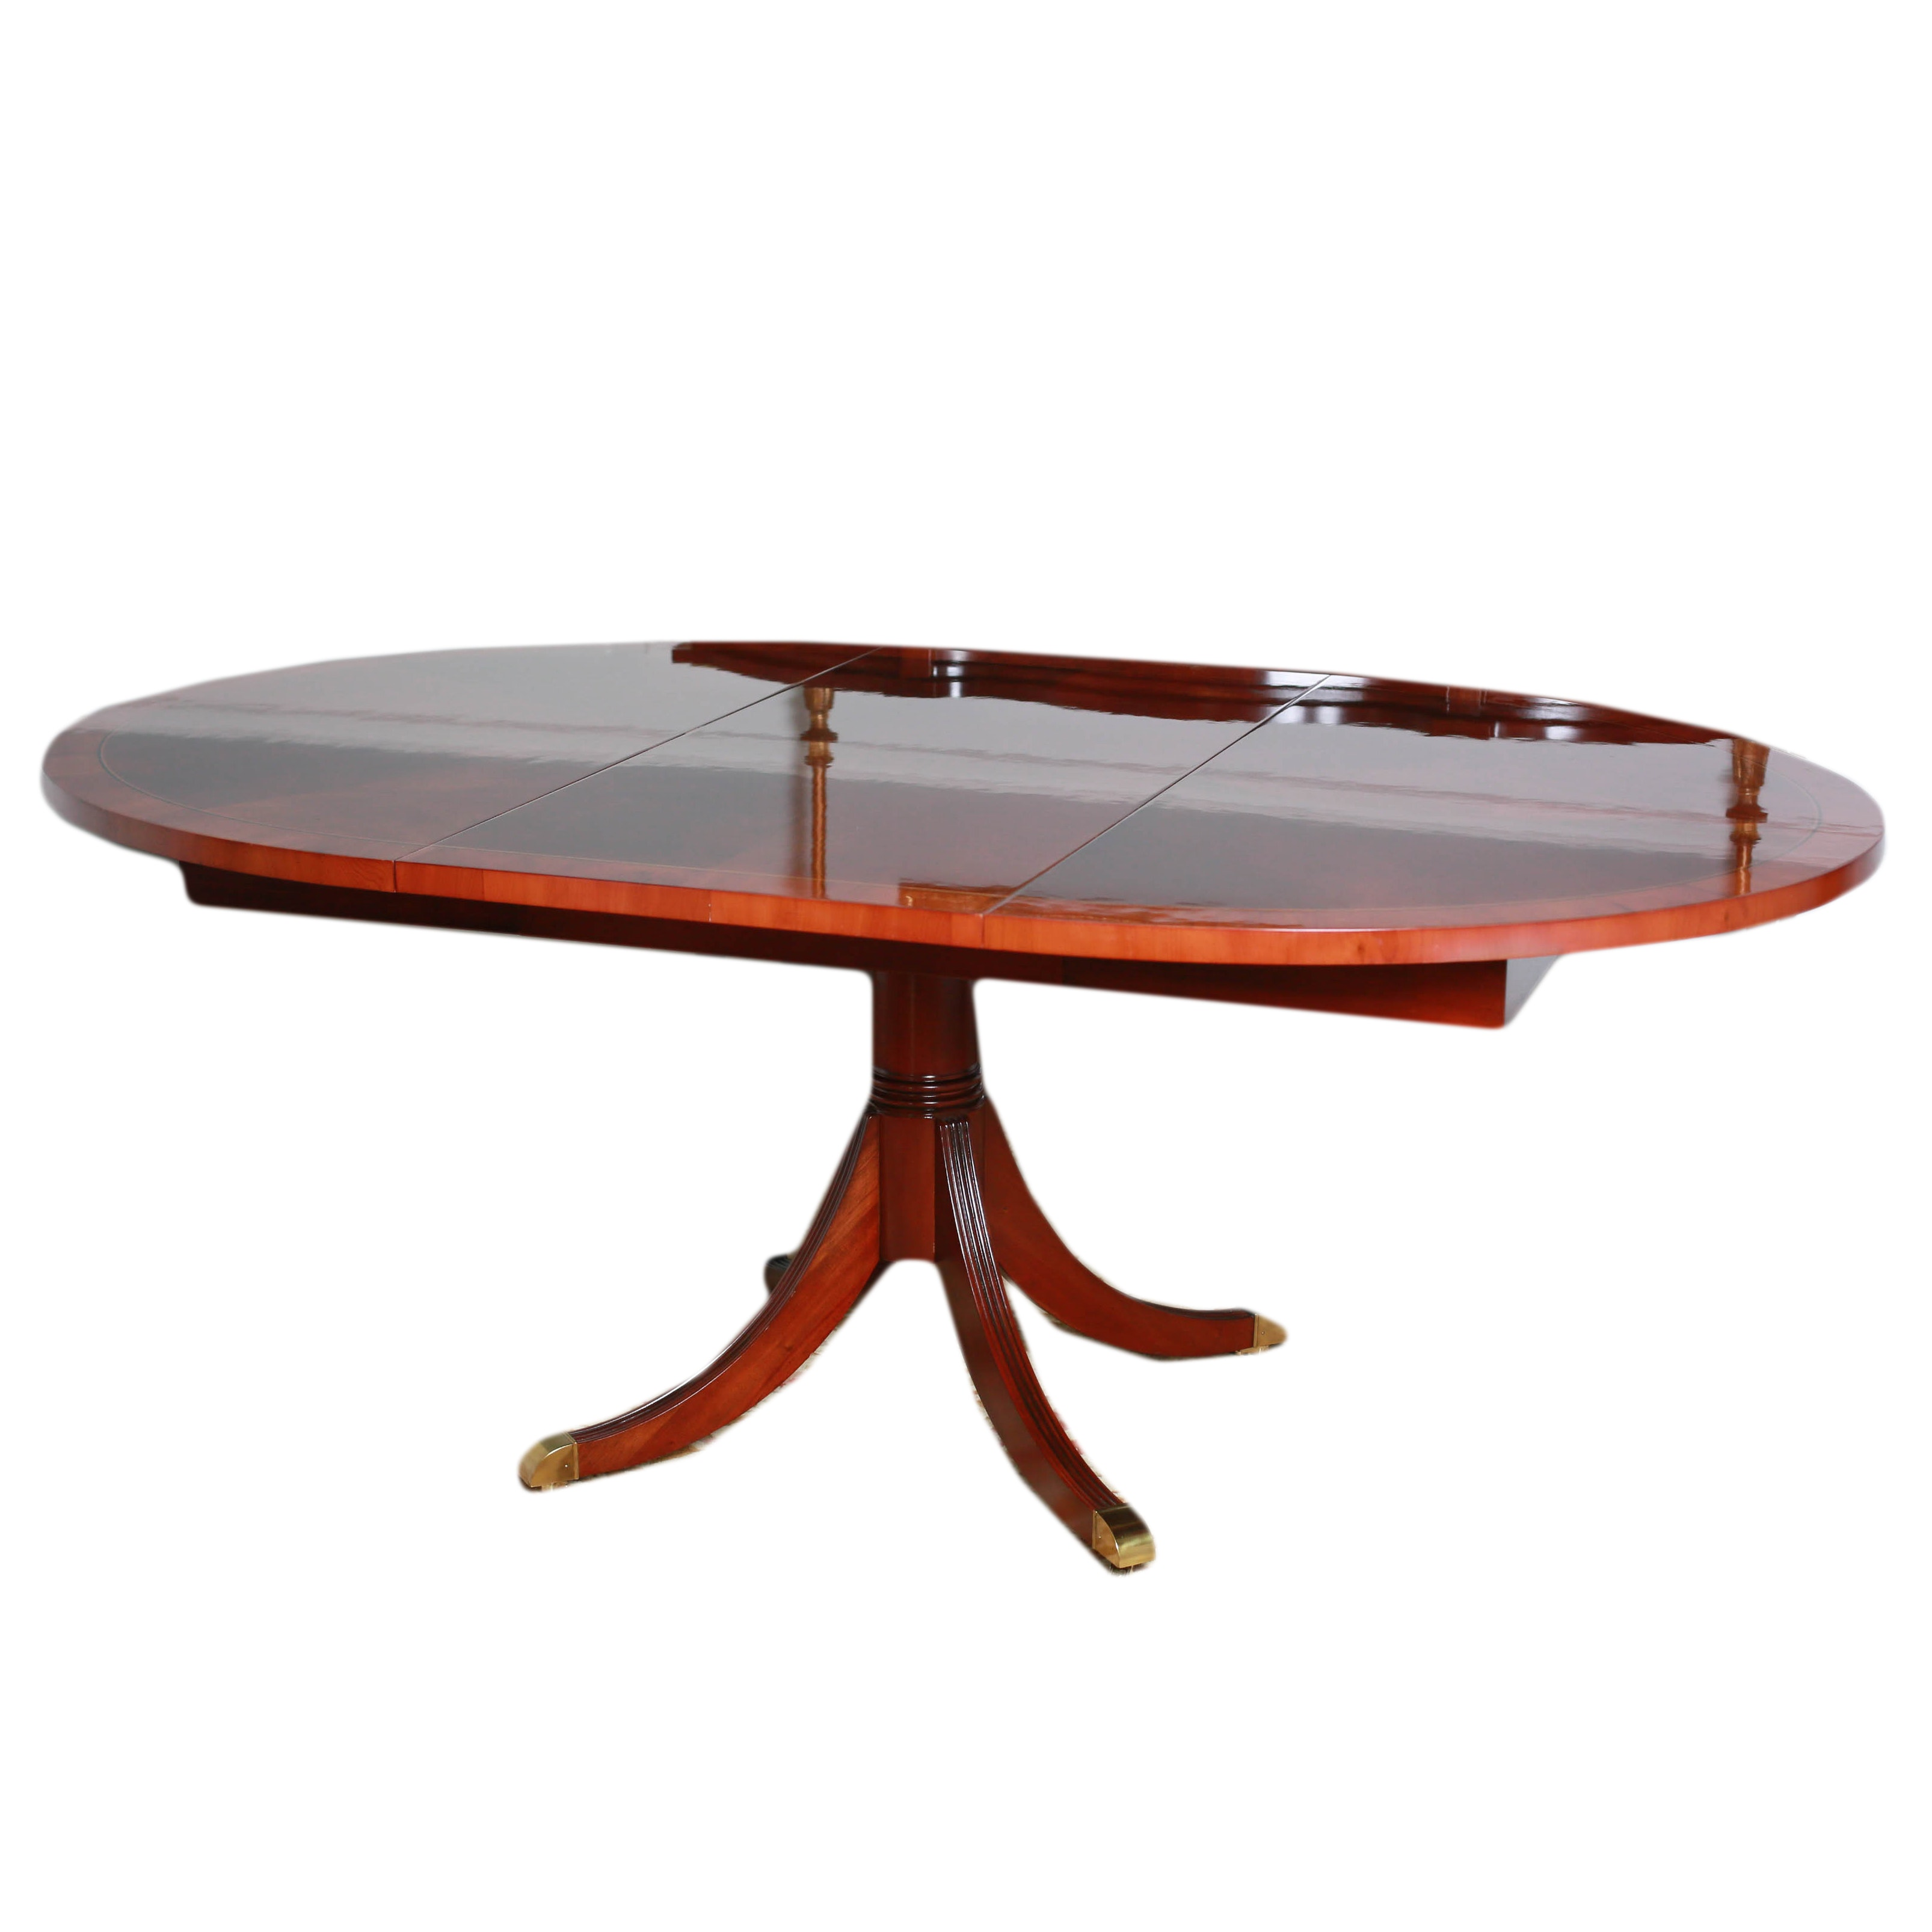 "Heckman Furniture ""Copley Square"" Dining Table with Leaf Model #6-711"